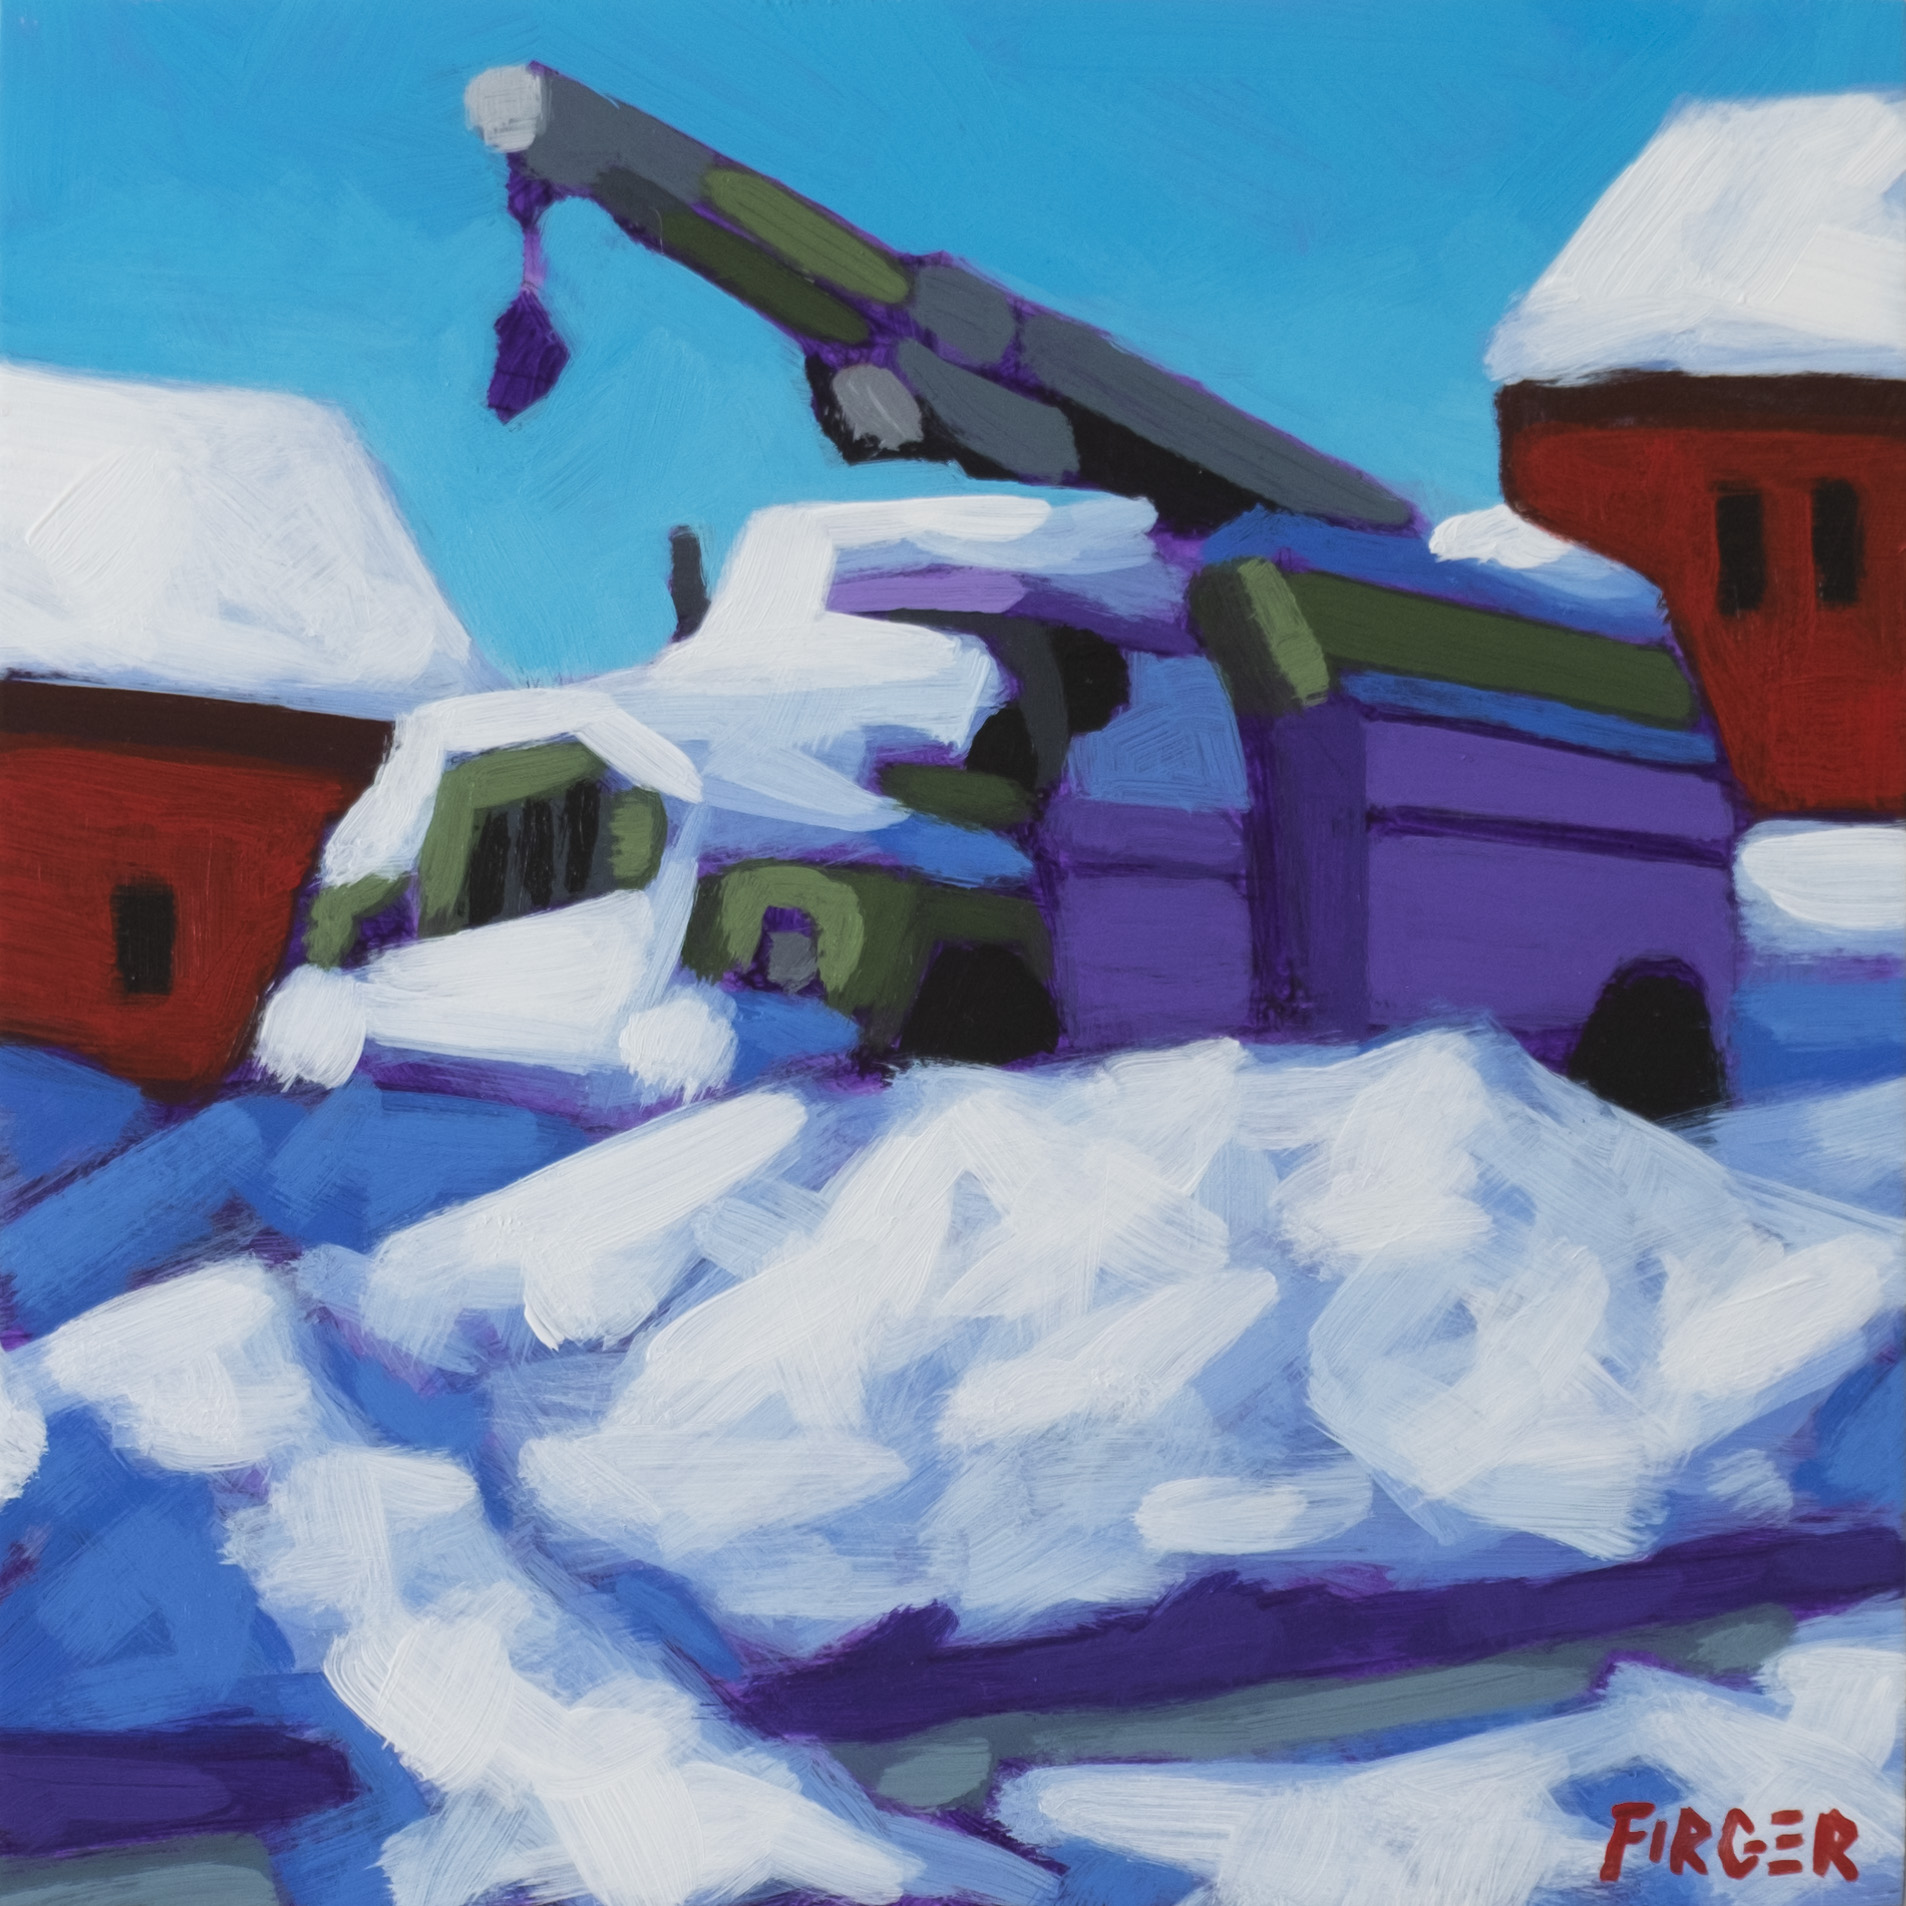 Snow Day 8 x 8, Acrylic on Panel (SOLD)